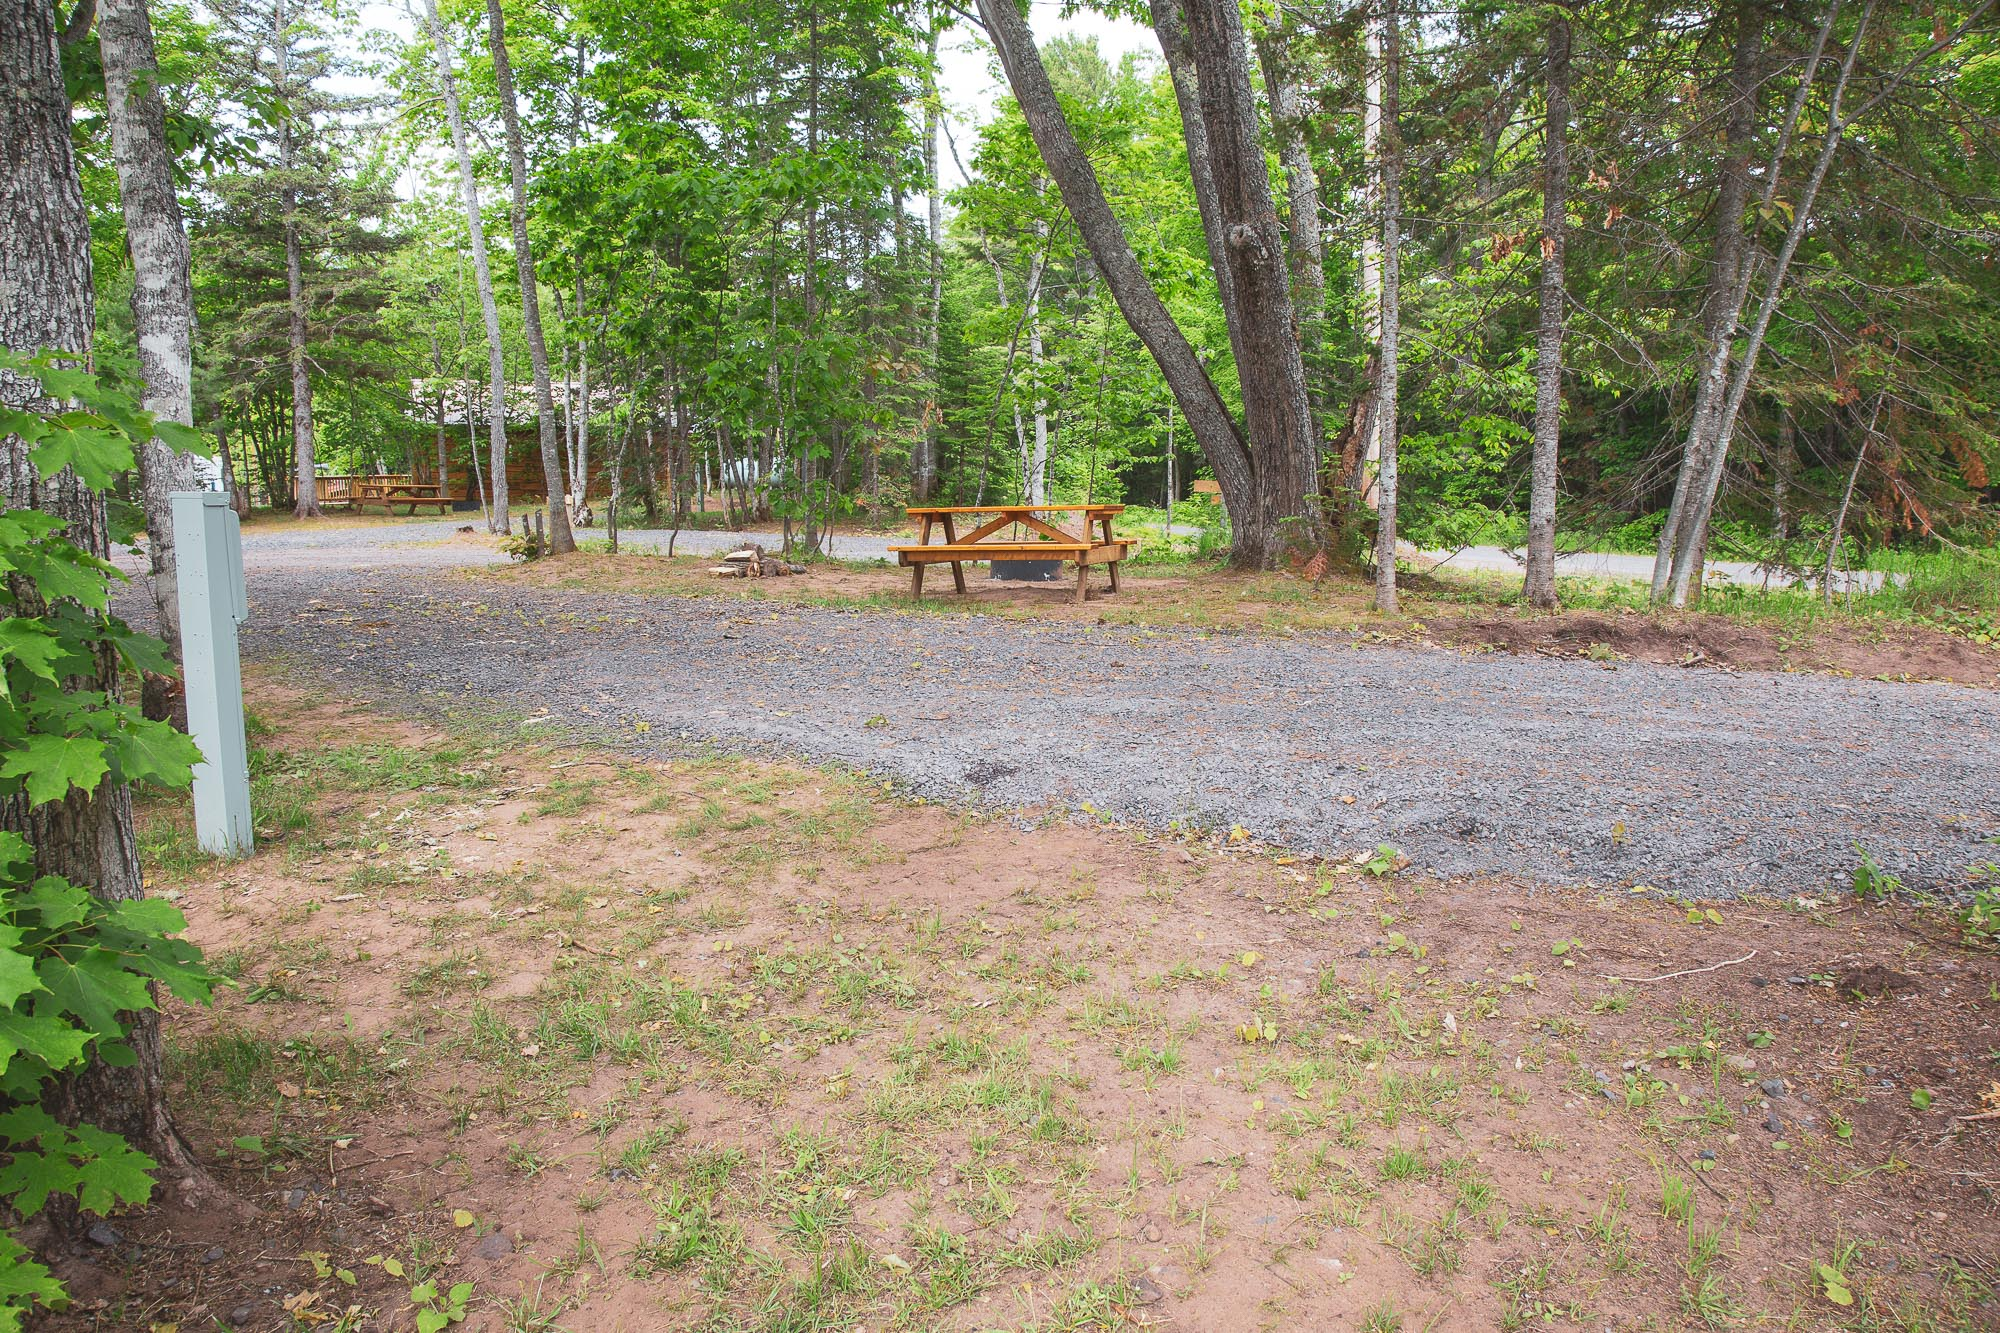 Photo of Campground Site 2 at the Wilderness Resort in Lac La Belle Michigan